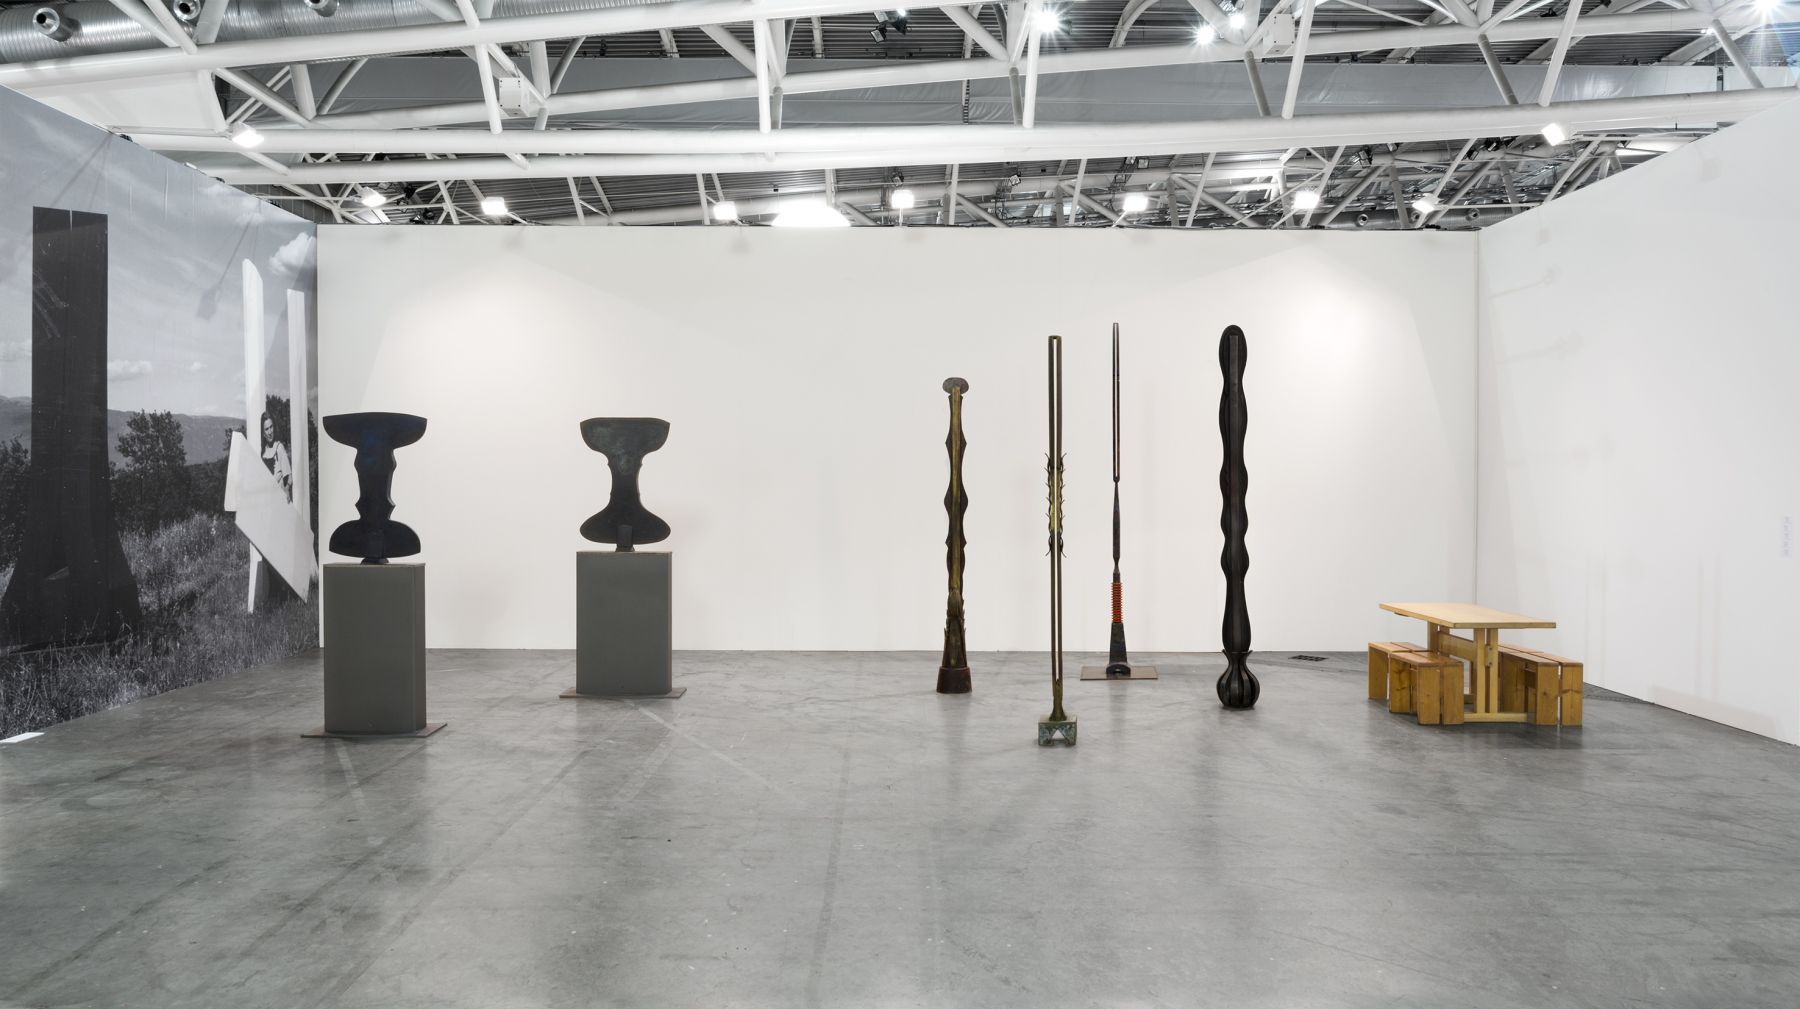 Installation view of Beverly Pepper at Artissima 2017